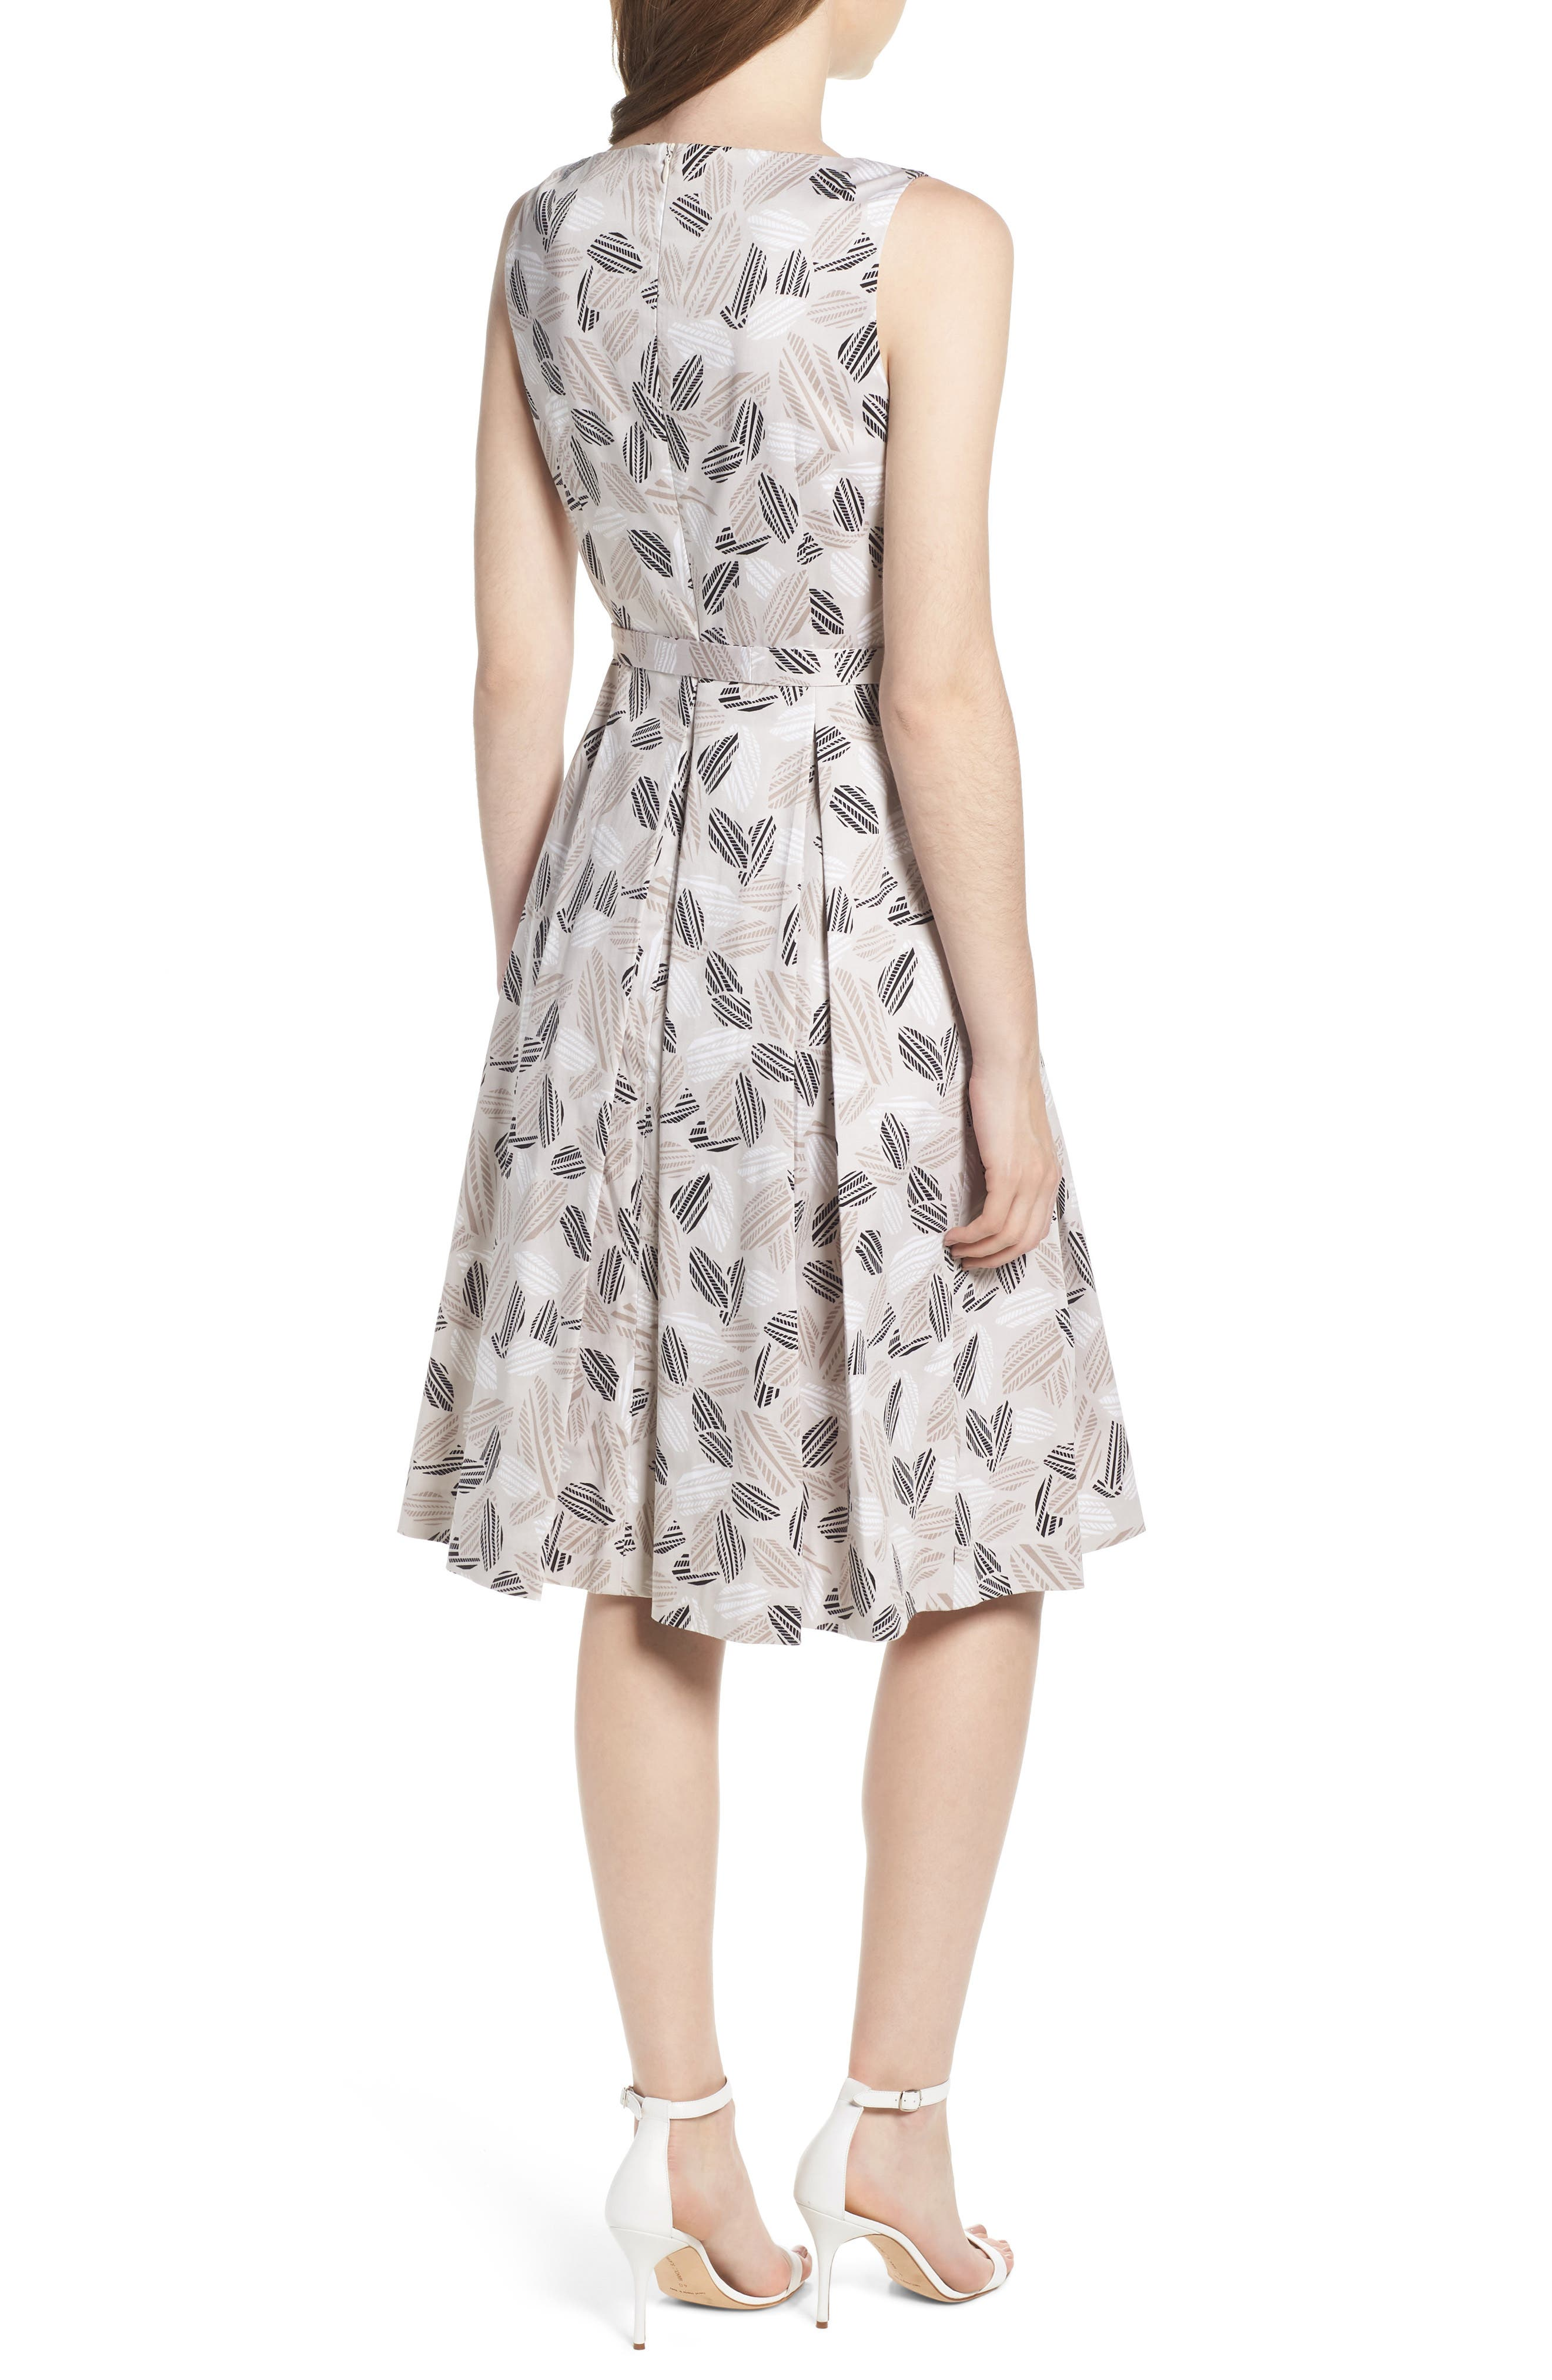 Leaf Print Fit And Flare Dress,                             Alternate thumbnail 2, color,                             Parchment/ Oyster Shell Combo